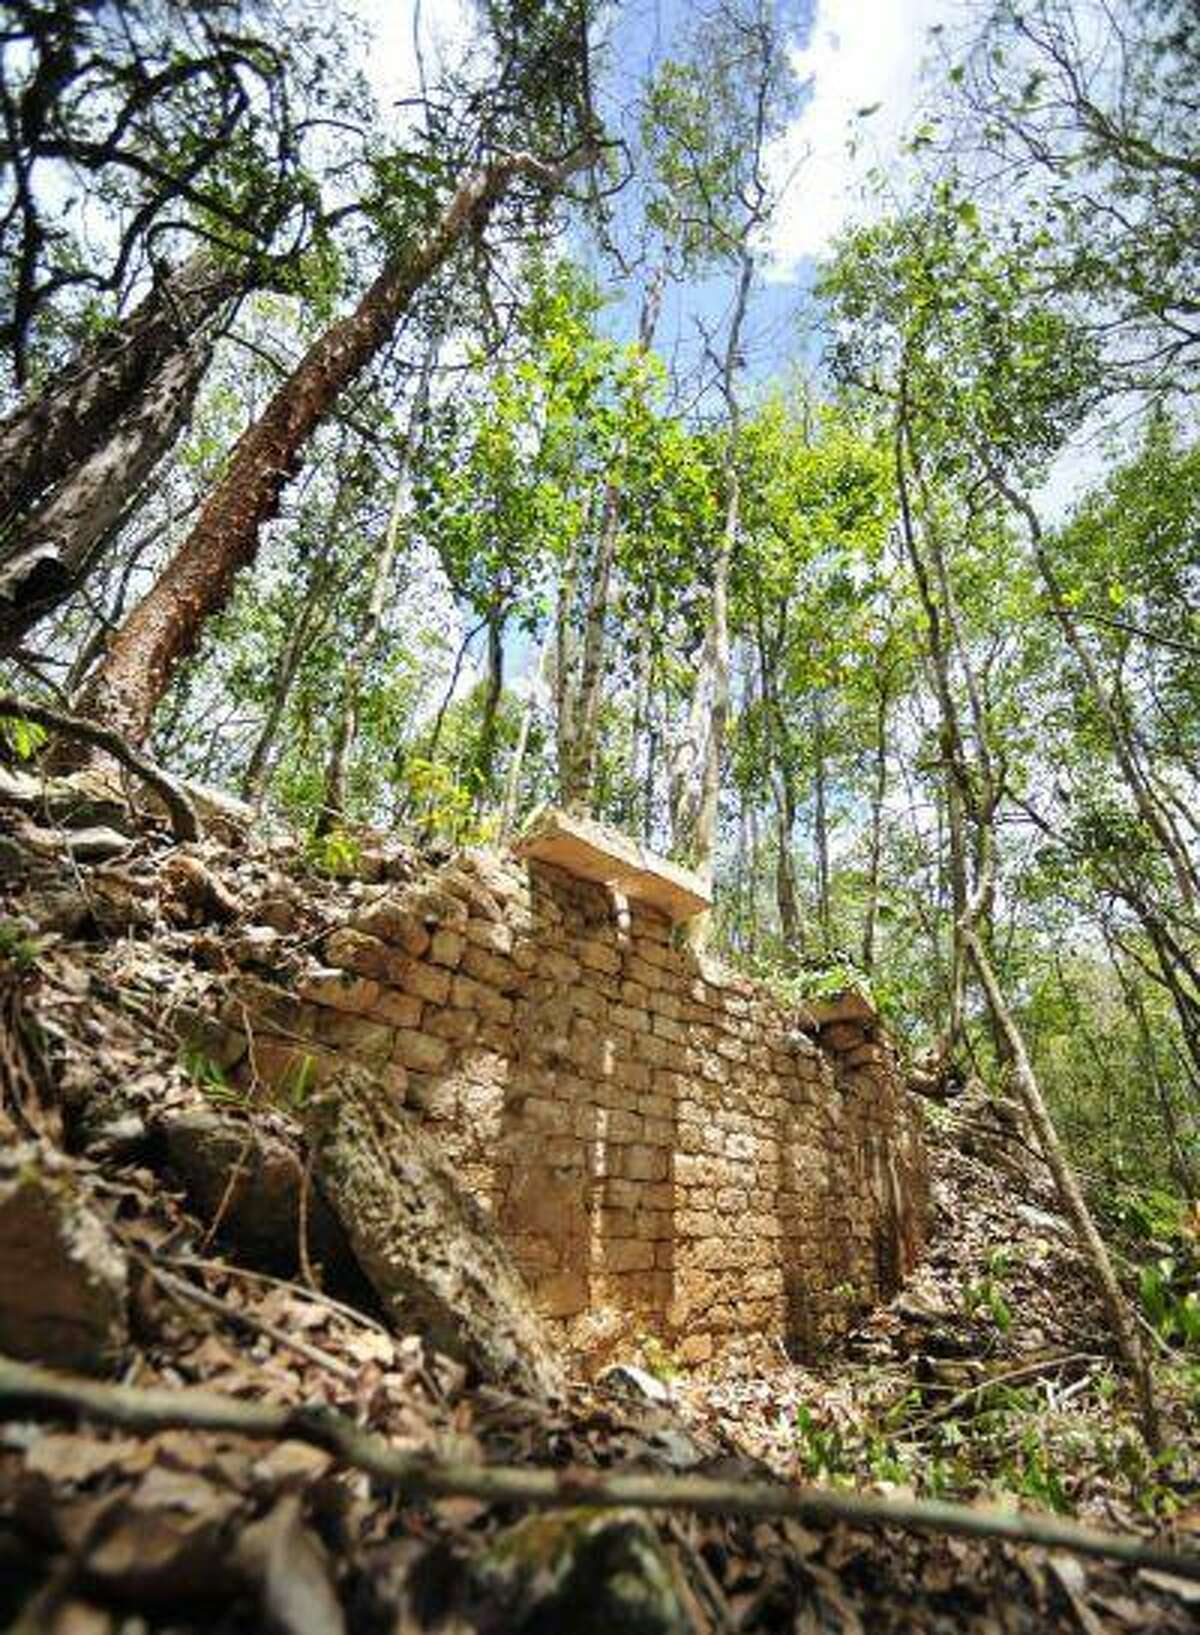 The remains of a building are pictured at the newly discovered ancient Maya city Chactun in Yucatan peninsula in this undated handout picture by National Institute of Anthropology and History (INAH) made available to Reuters June 18, 2013. Archaeologists have found the ancient Maya city that remained hidden for centuries in the rain forests of eastern Mexico, a discovery in a remote nature reserve they hope will yield clues about how the civilization collapsed around 1,000 years ago. REUTERS/INAH/Handout via Reuters (MEXICO - Tags: ENVIRONMENT SOCIETY TRAVEL) ATTENTION EDITORS - THIS IMAGE WAS PROVIDED BY A THIRD PARTY. FOR EDITORIAL USE ONLY. NOT FOR SALE FOR MARKETING OR ADVERTISING CAMPAIGNS. THIS PICTURE IS DISTRIBUTED EXACTLY AS RECEIVED BY REUTERS, AS A SERVICE TO CLIENTS